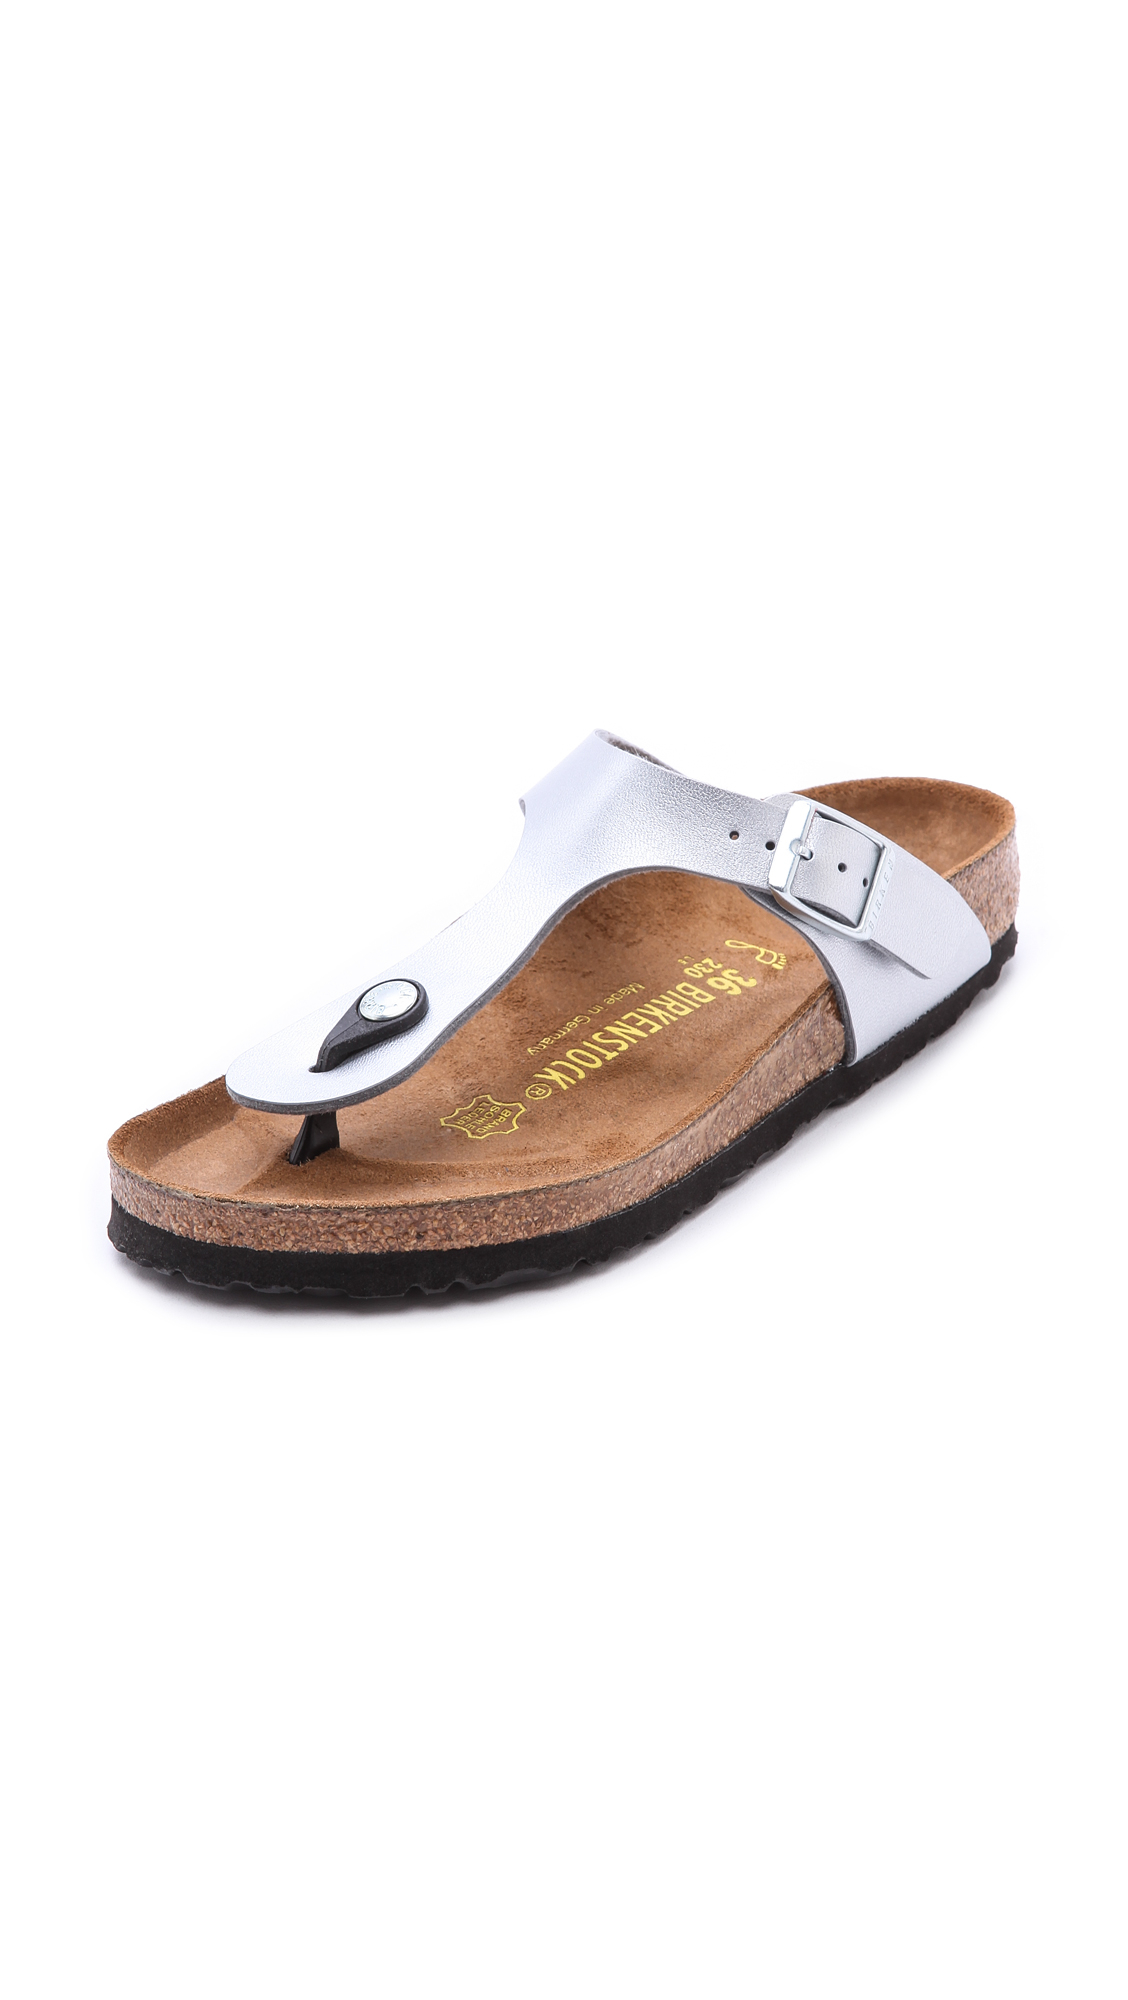 45bfdfc3964963 Lyst - Birkenstock Gizeh Thong Sandals - Silver in Metallic